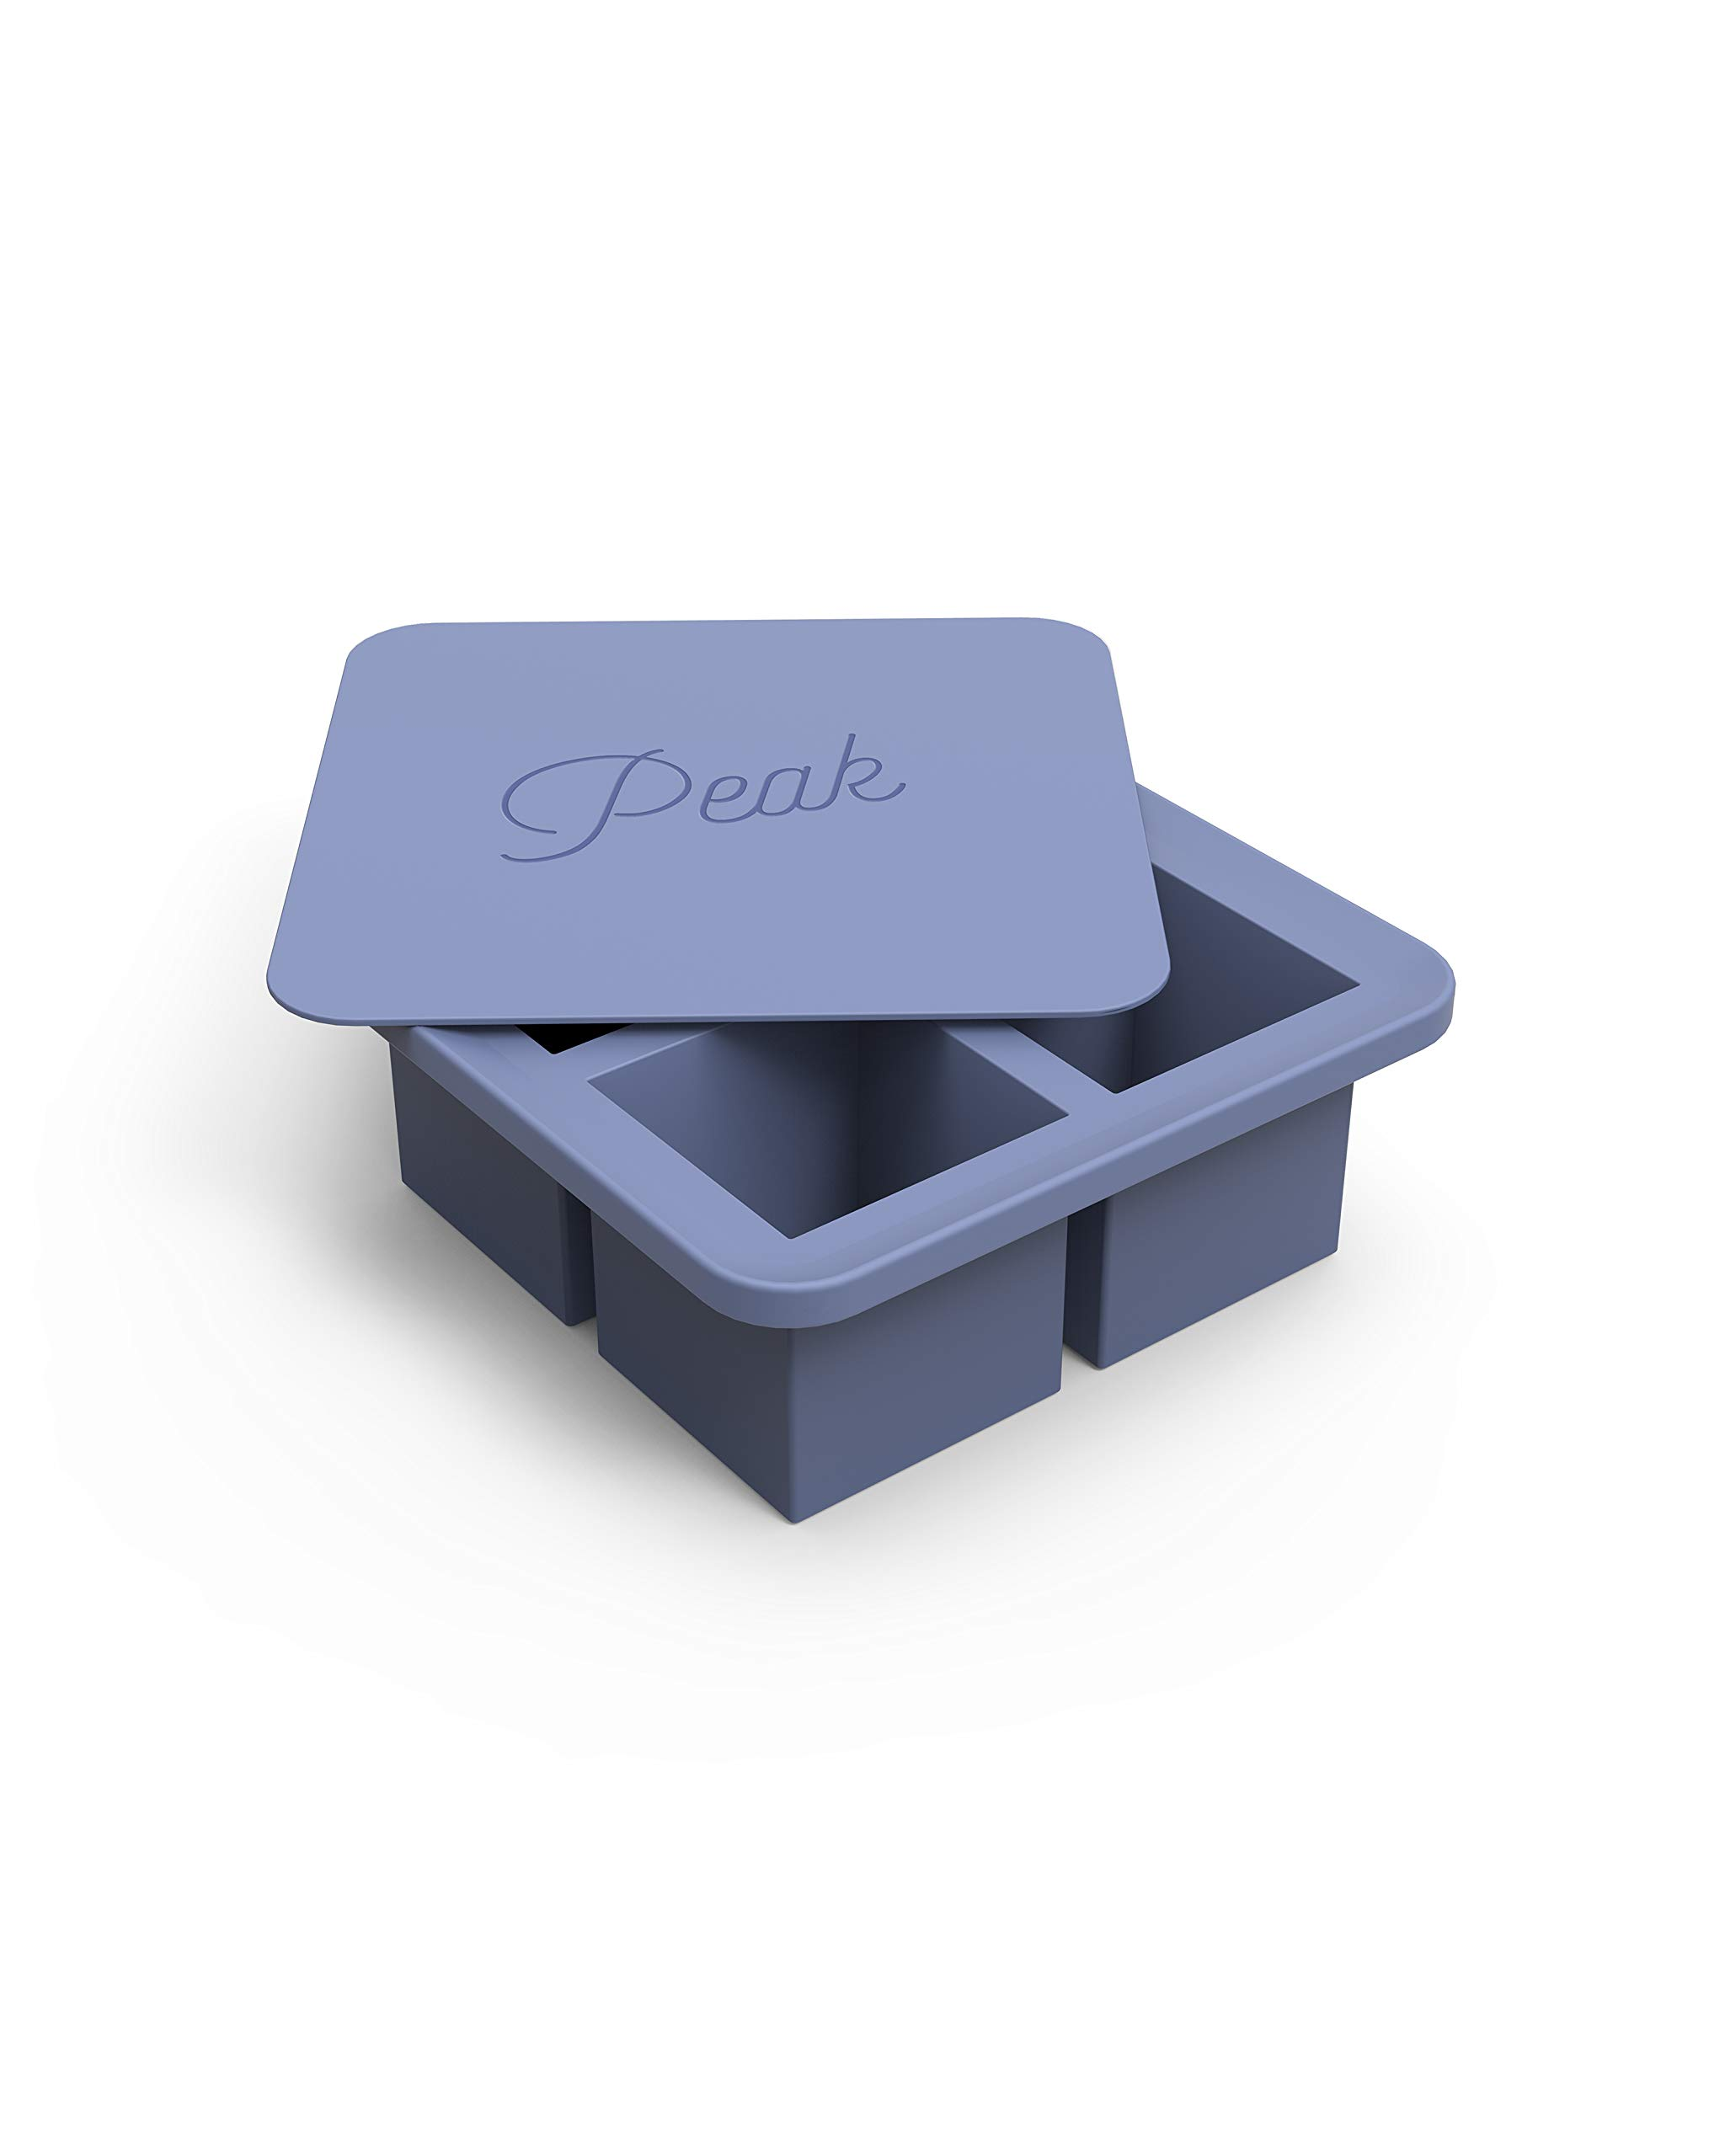 W&P Peak Silicone Extra Large Cube Ice Tray w/ Protective Lid | Blue Peak | Easy to Remove Ice Cubes | Food Grade Premium Silicone | Dishwasher Safe, BPA Free